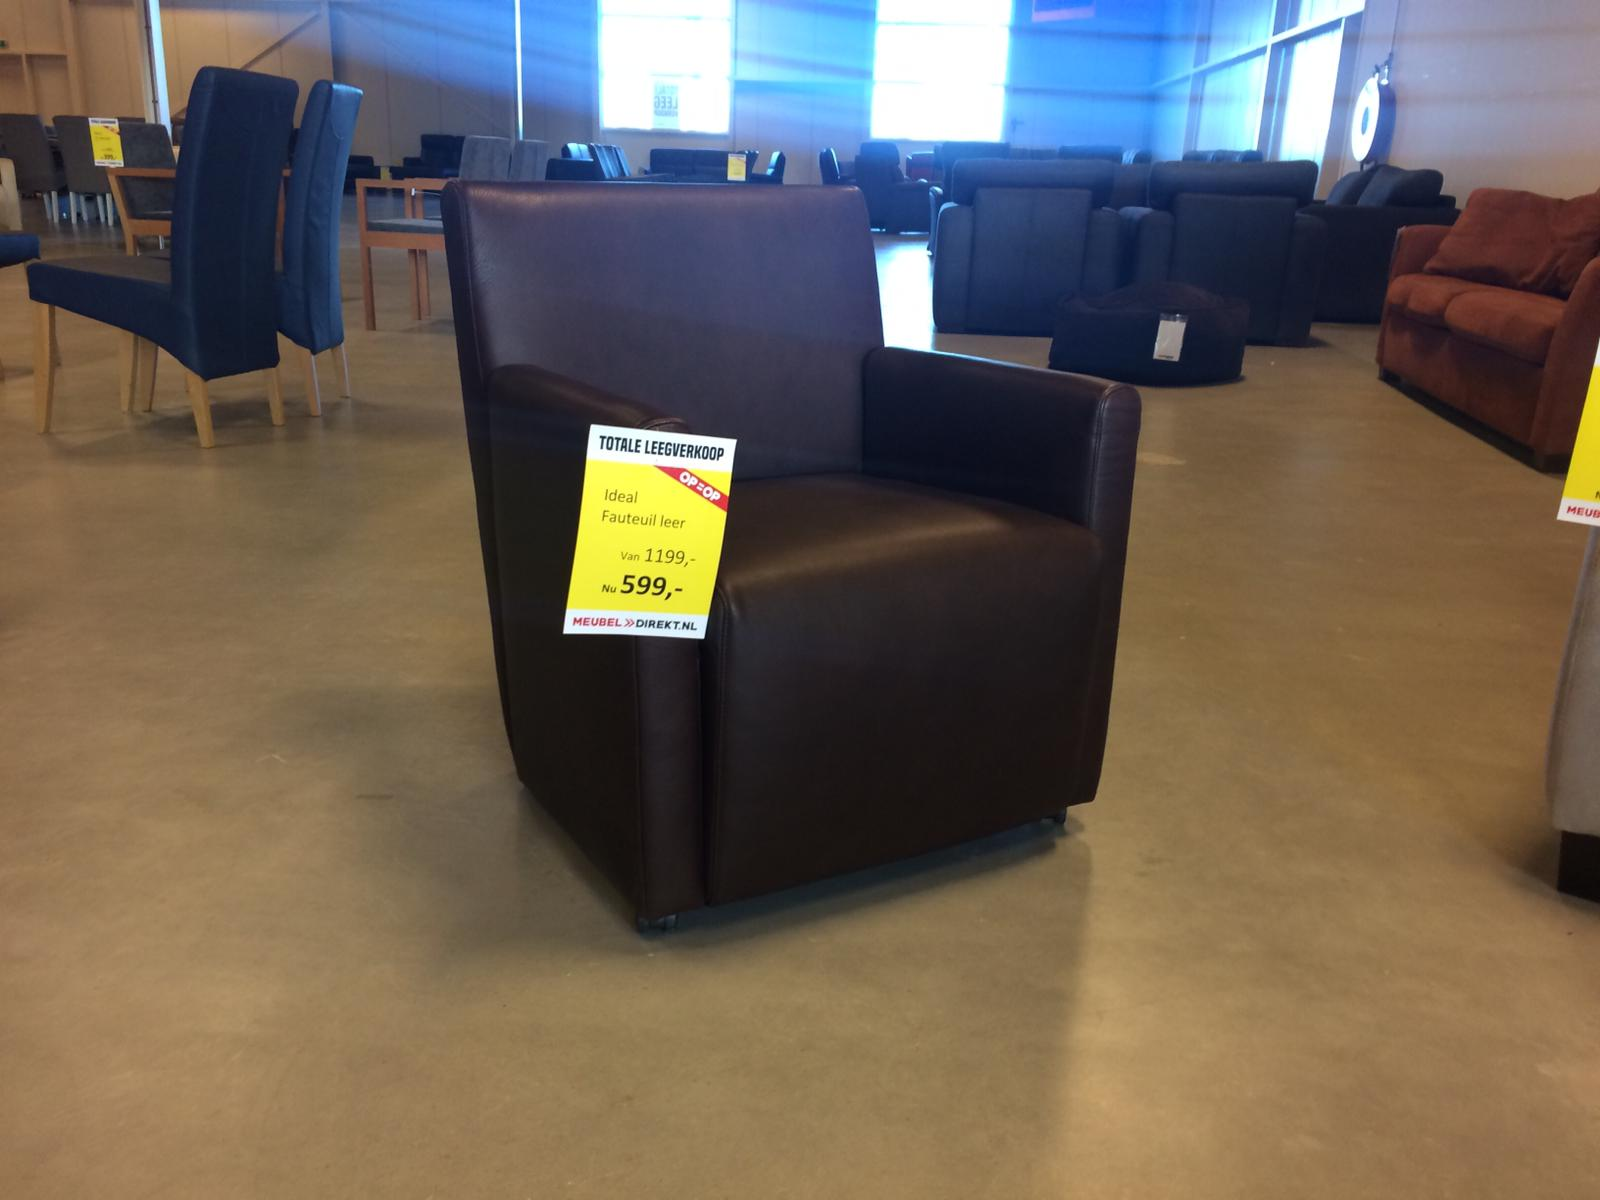 Ideal fauteuil